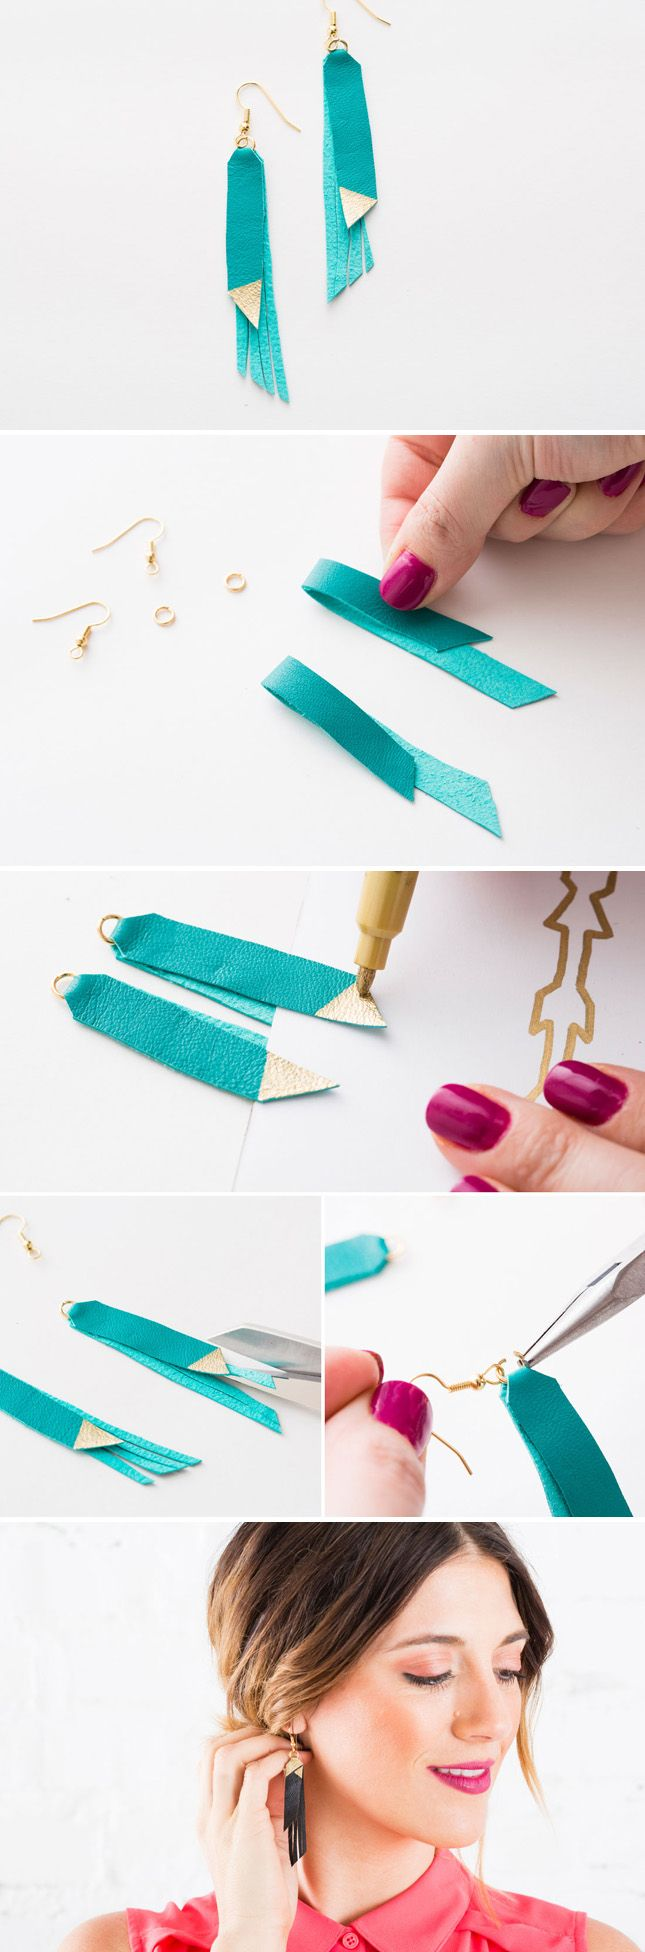 Make your own leather fringe jewelry with this kit. Buy it here…